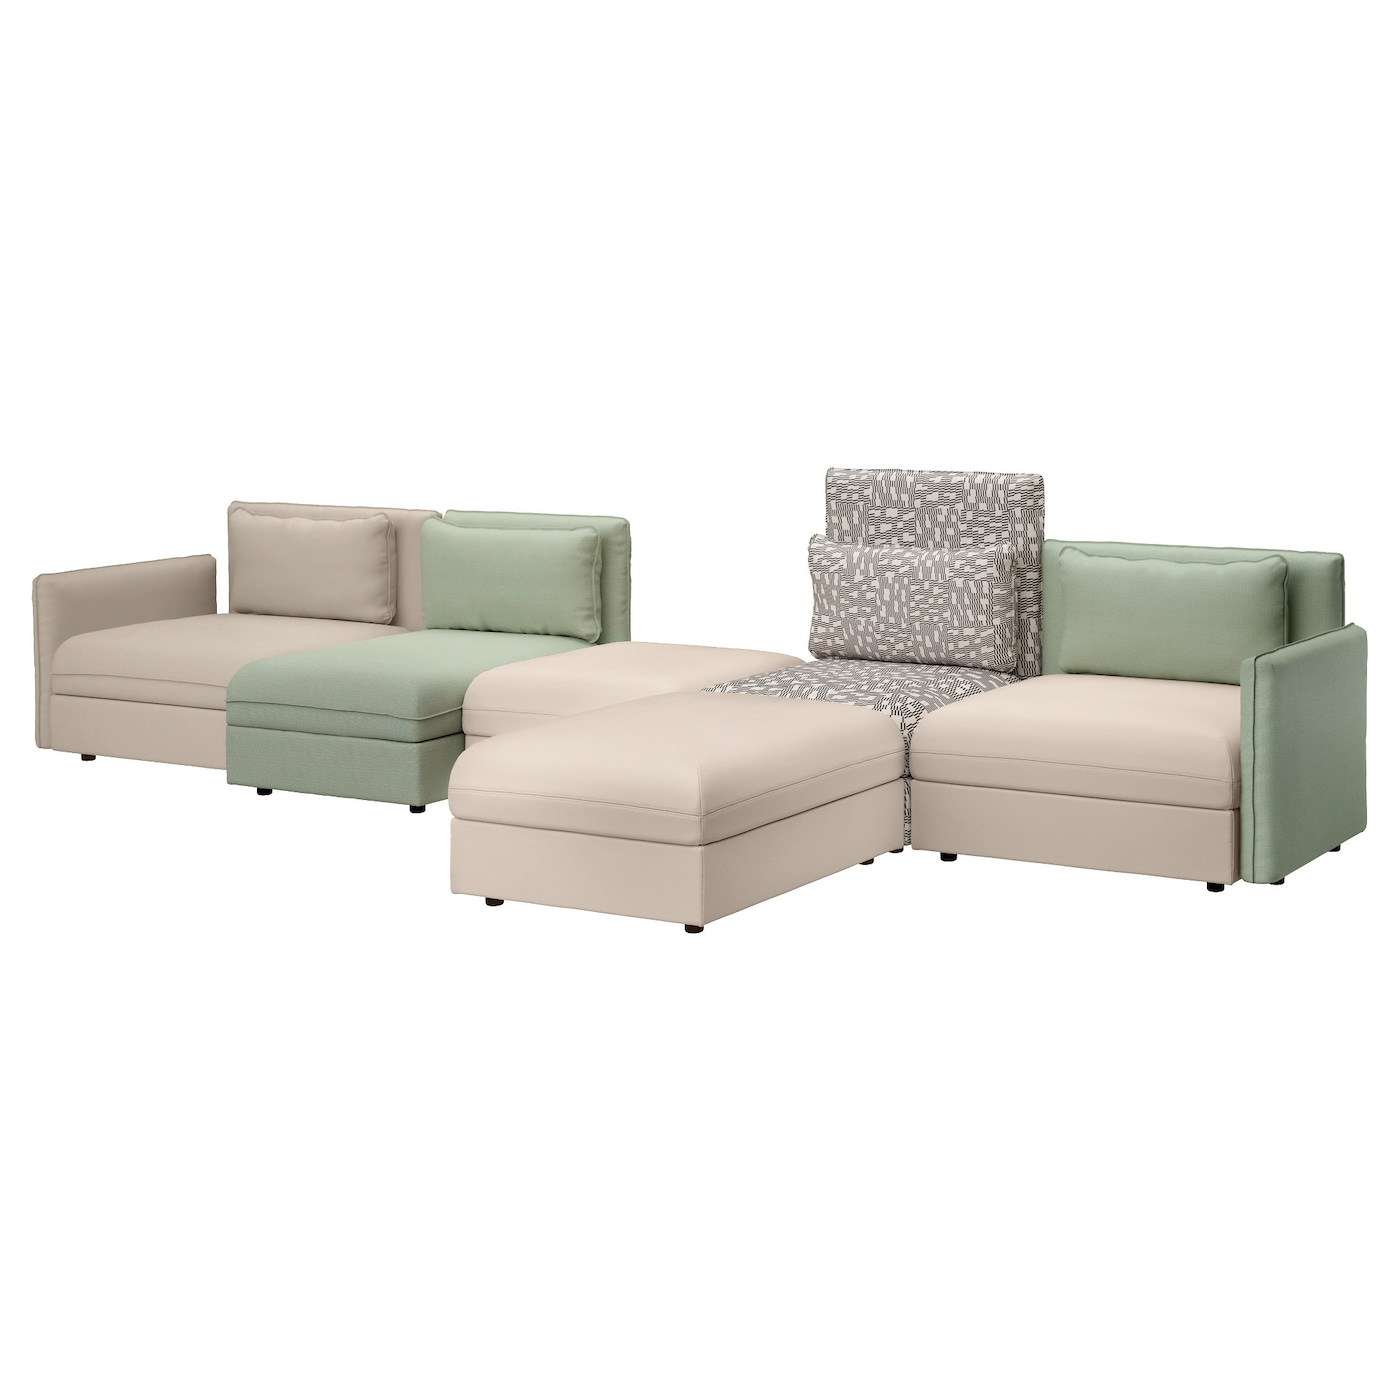 Vallentuna 5 Seat Sofa Murum Beige Hillared Green Ikea